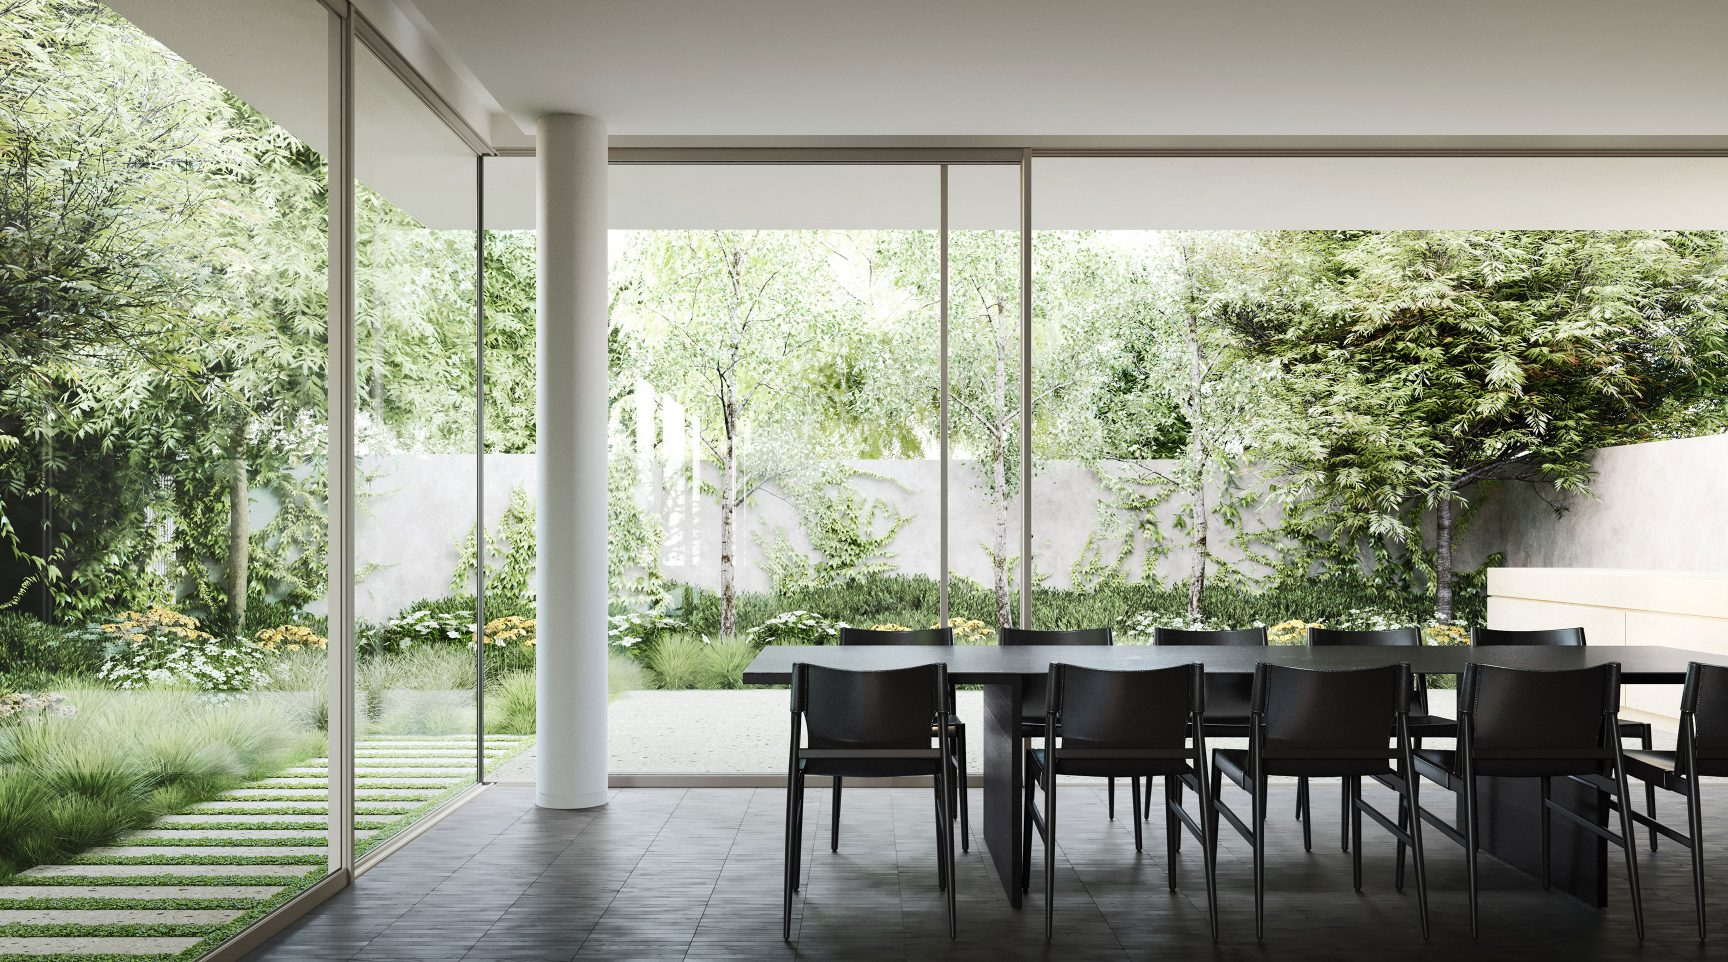 Heyington Toorak dining room set in garden